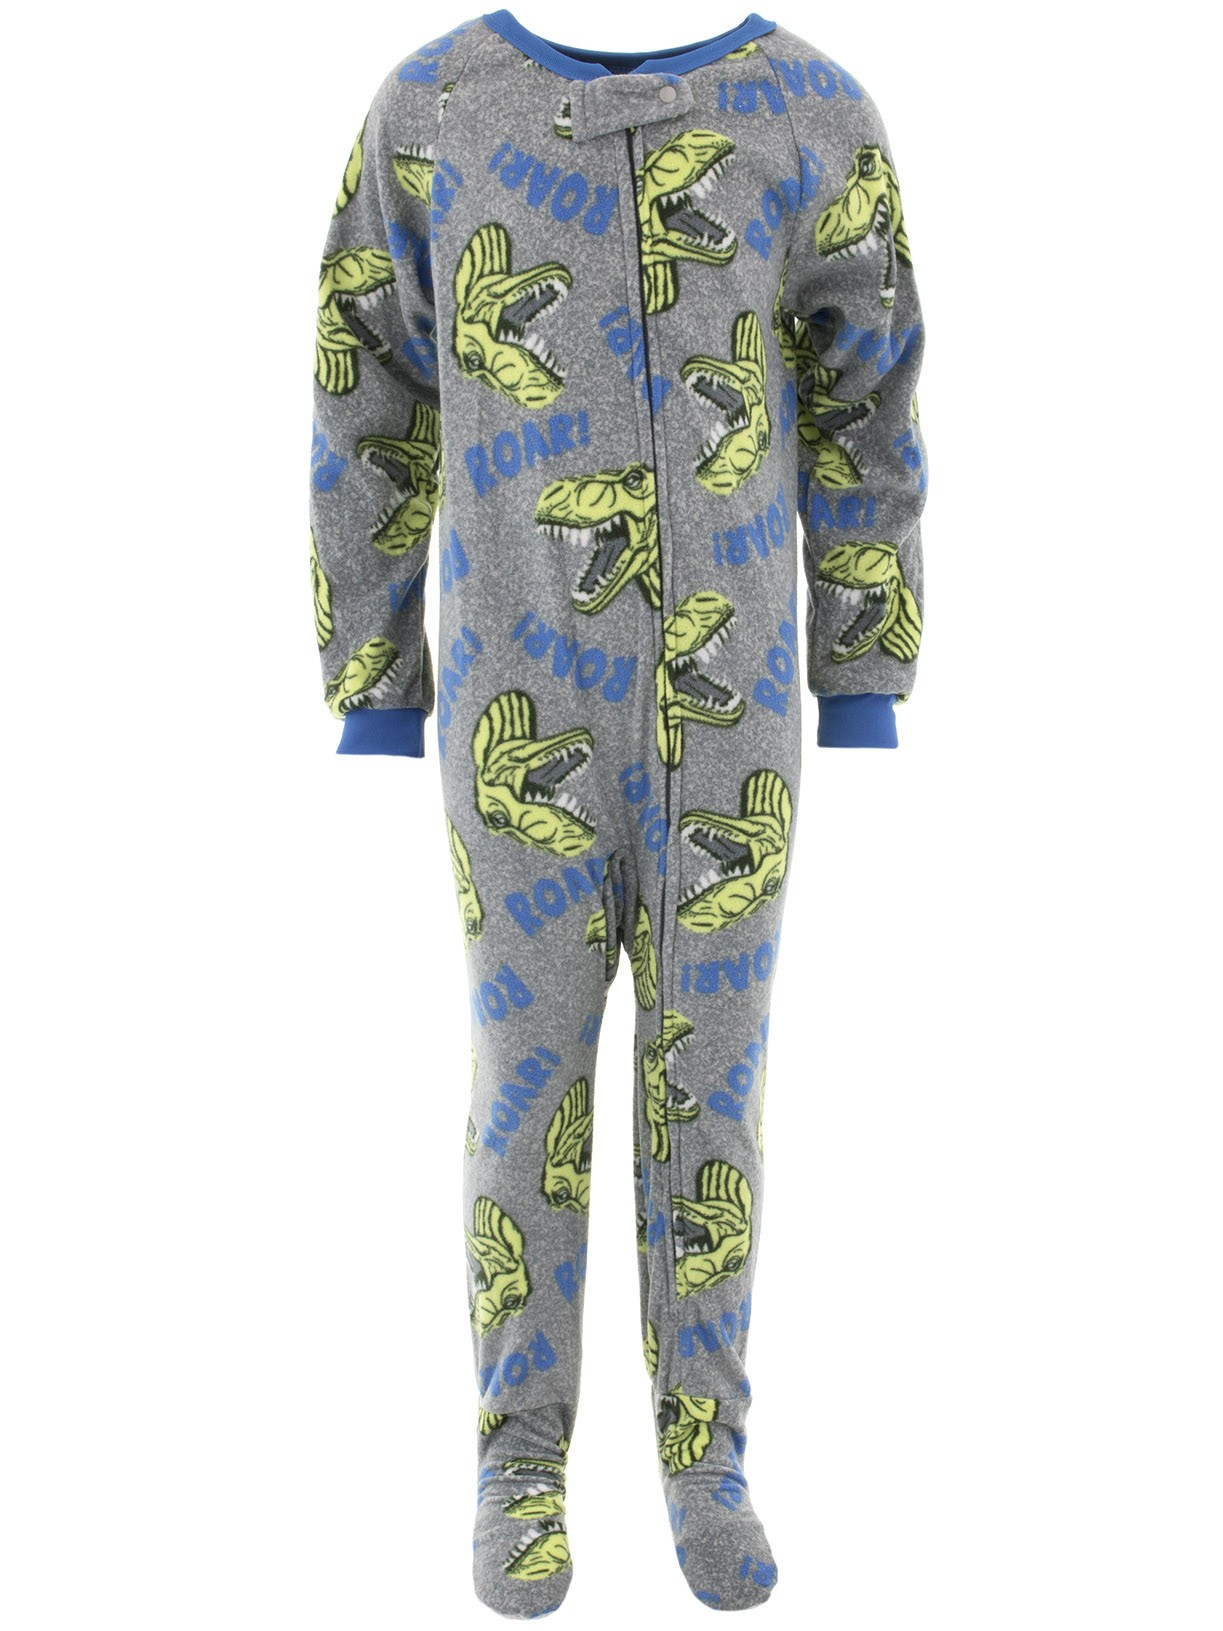 Quad Seven Boys Dino Roar Gray Footed Pajamas